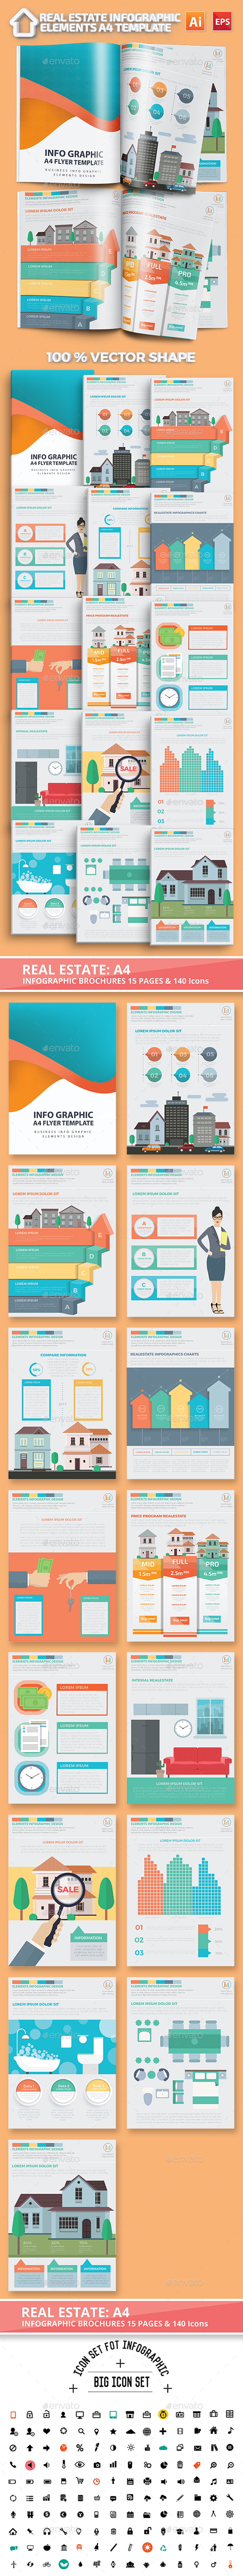 Real estate infographic Design - Infographics